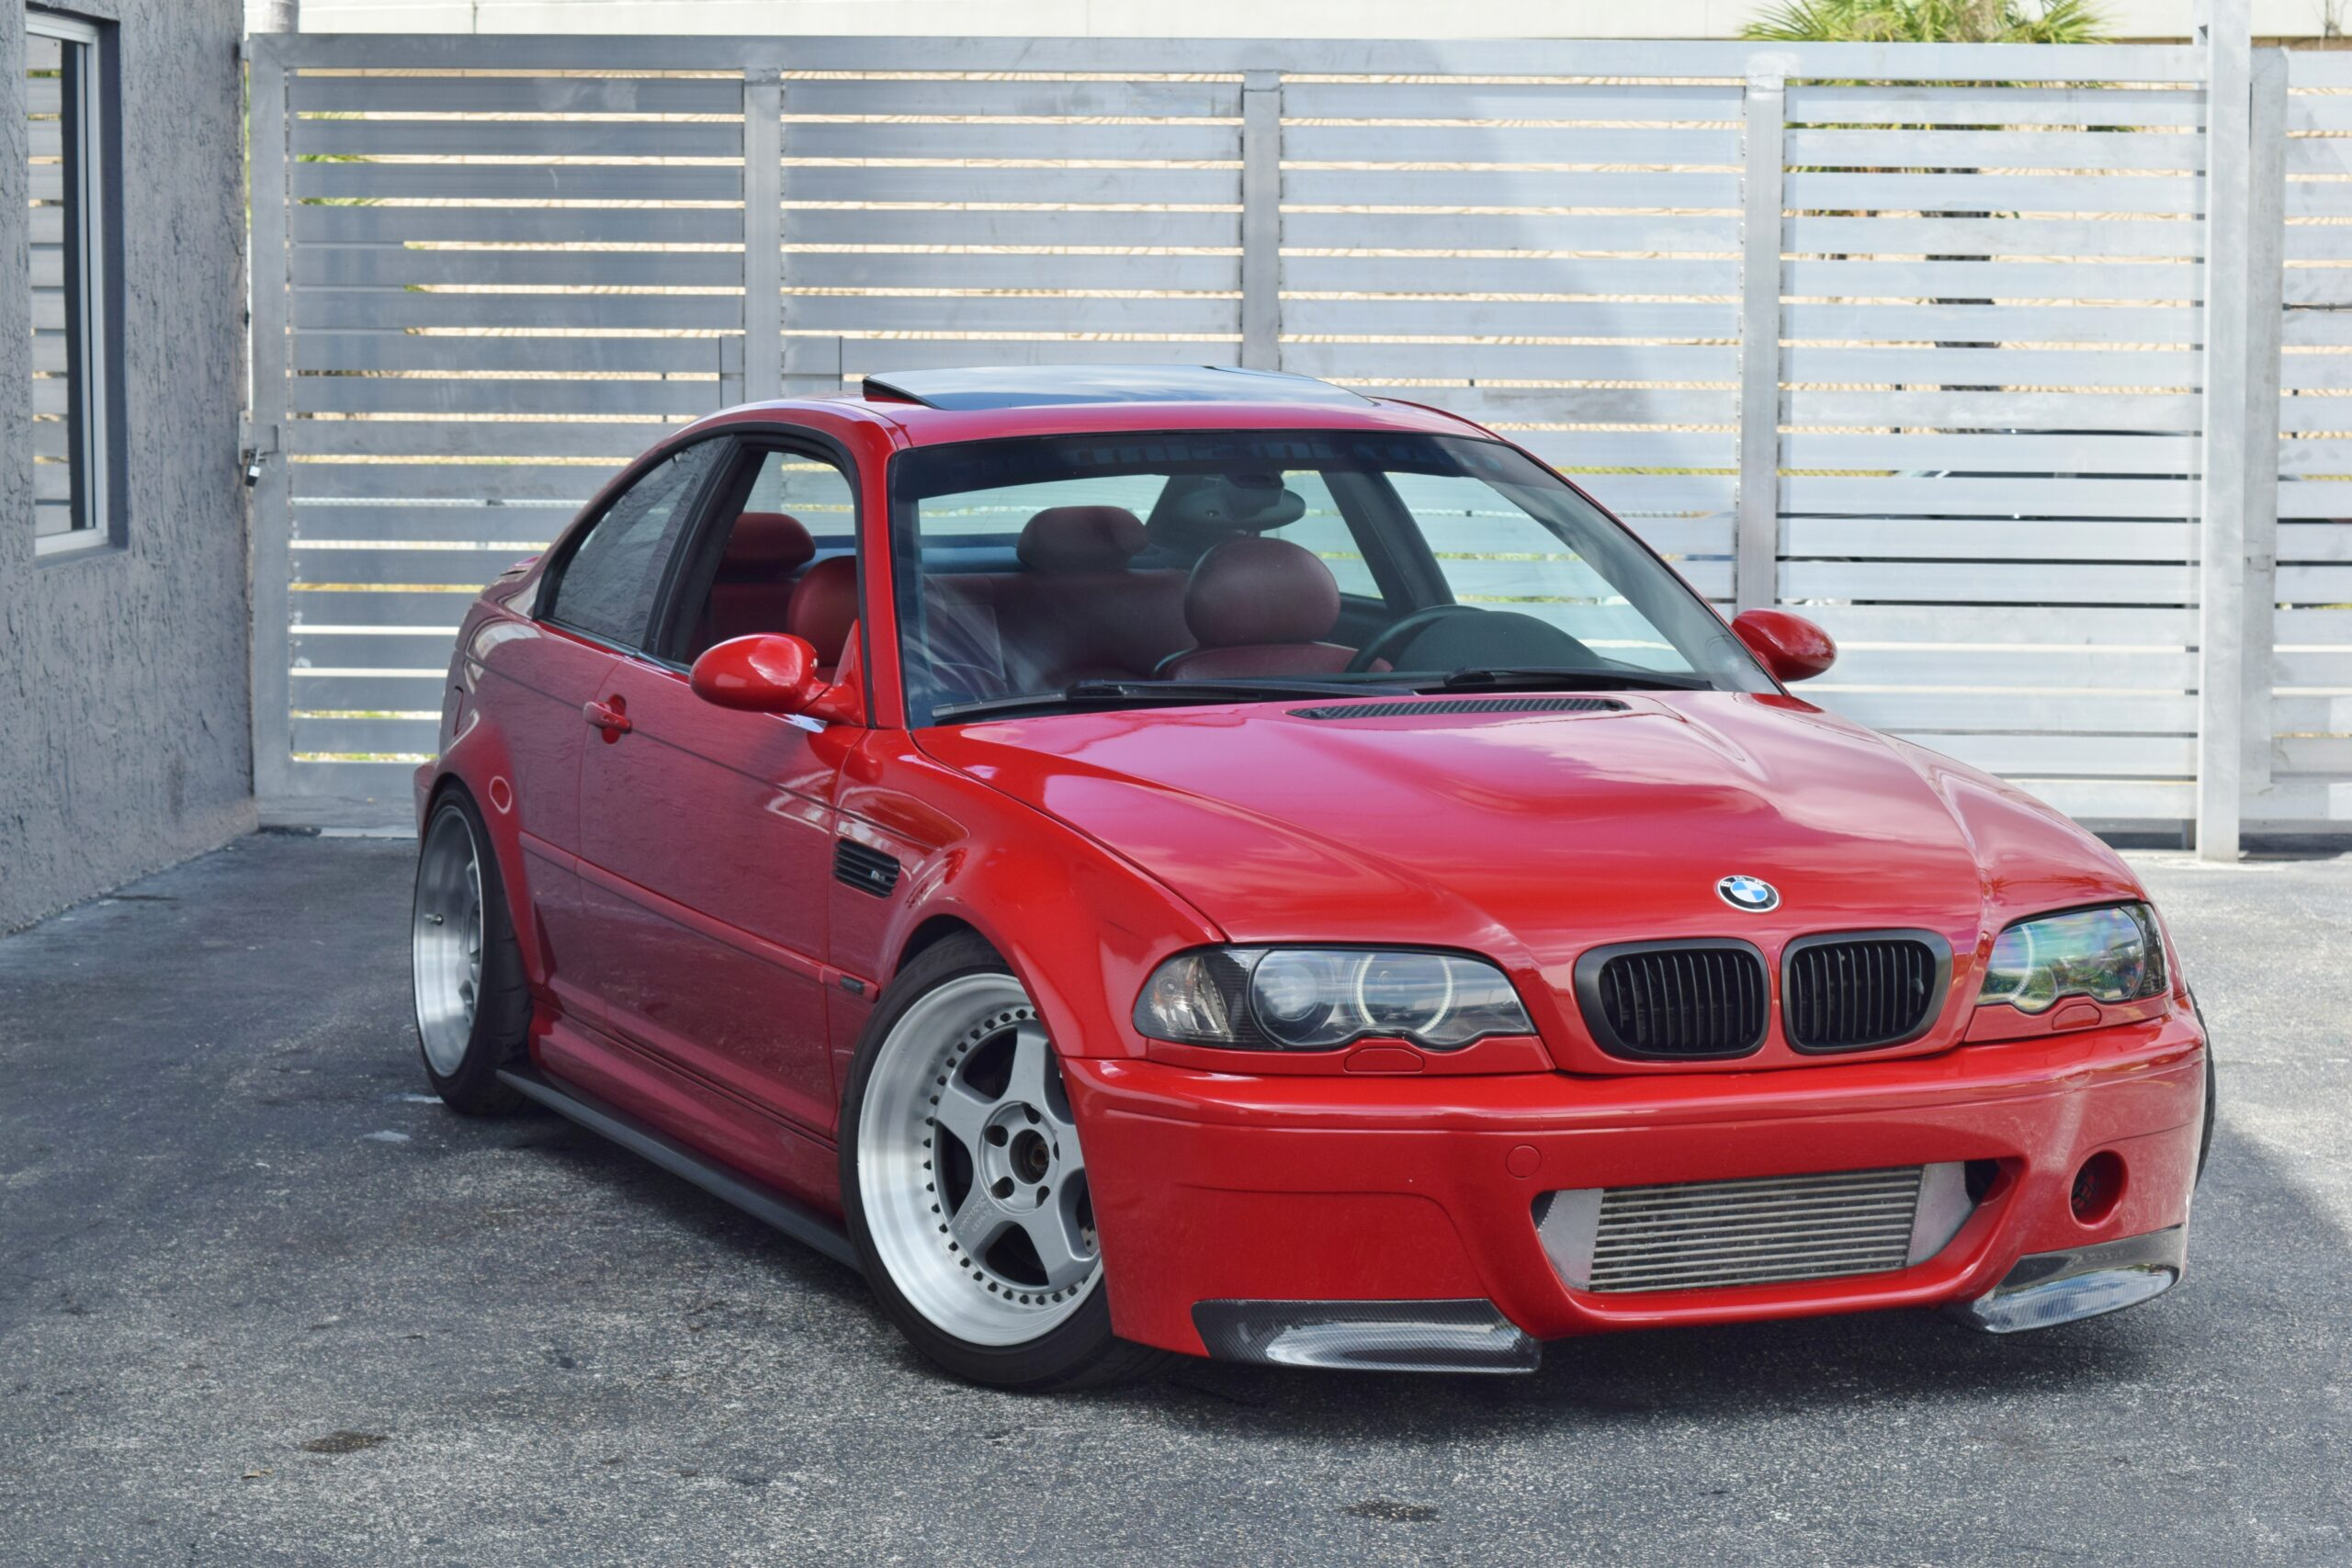 2002 BMW M3 E46 6 Speed Manual Imola Red/Red interior Supercharged-Airlift Suspension-Over $40,000 in Reciepts